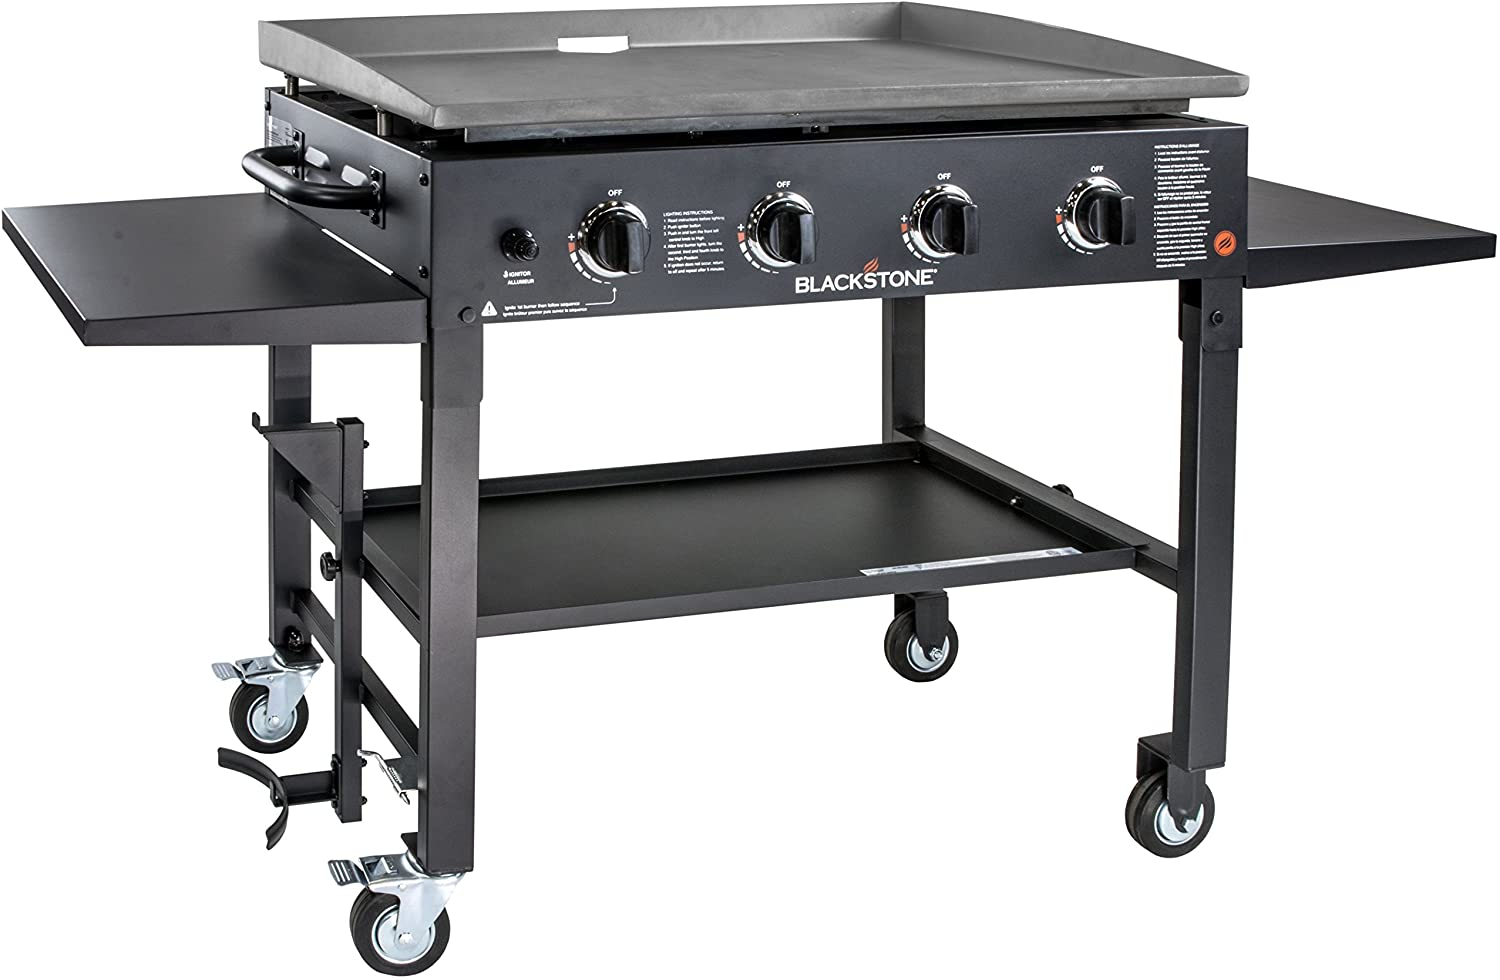 Blackstone Station-4-burner-Propane Fueled-Restaurant Grade-Professional 36 inch Outdoor Flat Top Gas Grill Griddle Station-4-bur